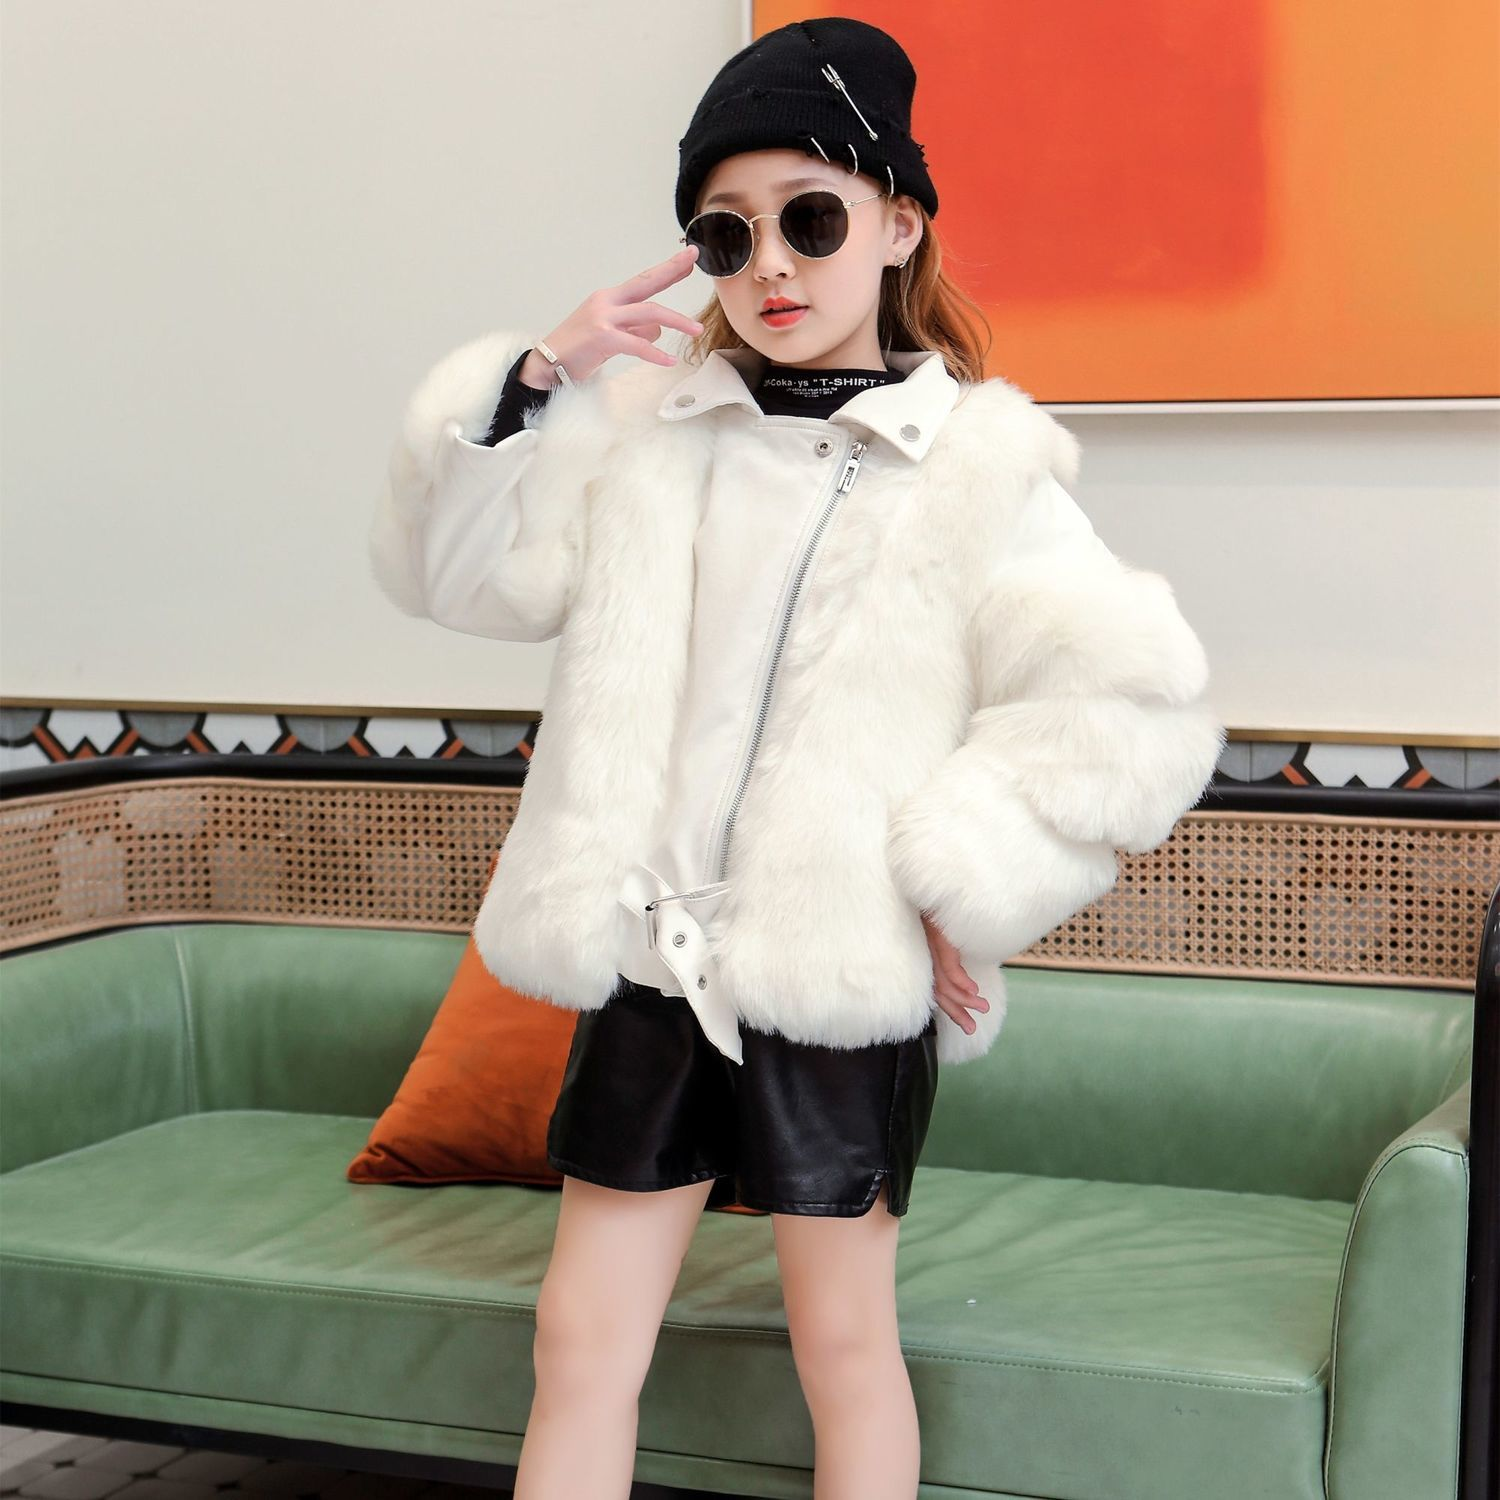 New 2021 Winter Fashion Baby Girls Outerwear & Coats Children's Faux Fur Girls Coat Kids Fake Fur Clothes Thick Warm Outwear D66 enlarge